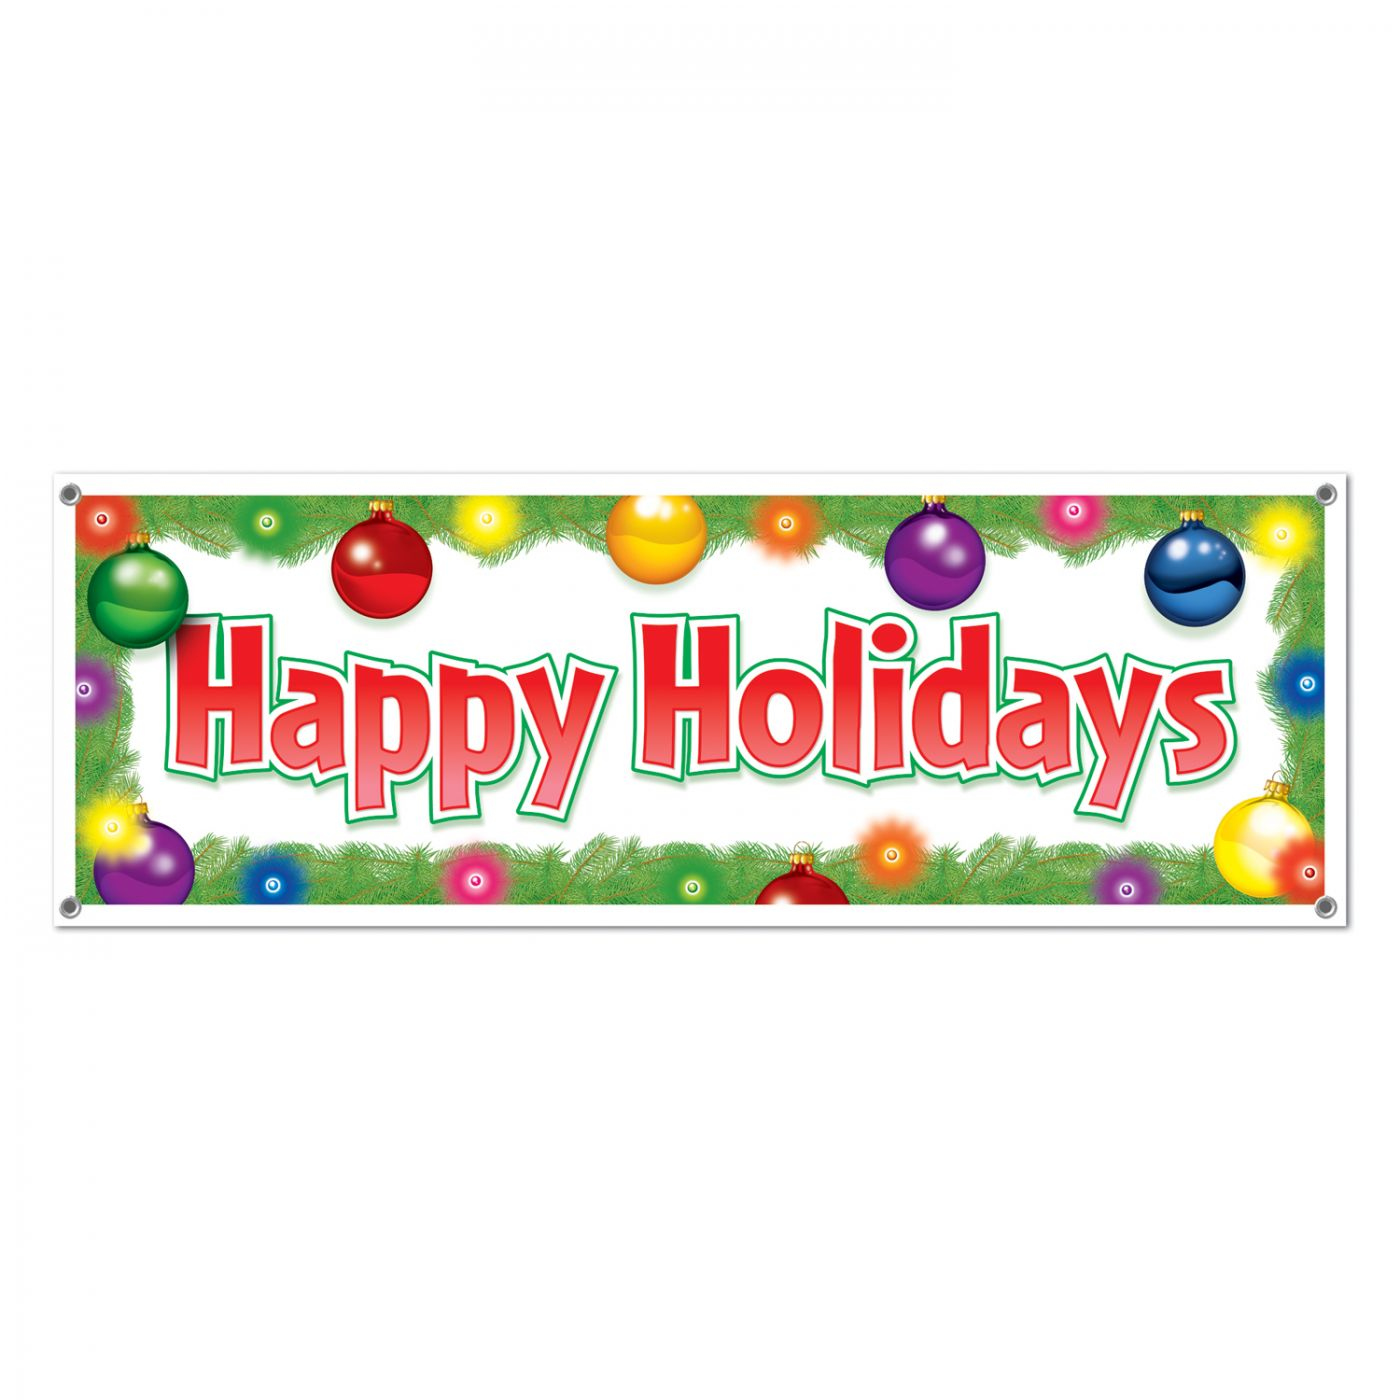 Happy Holidays Sign Banner image